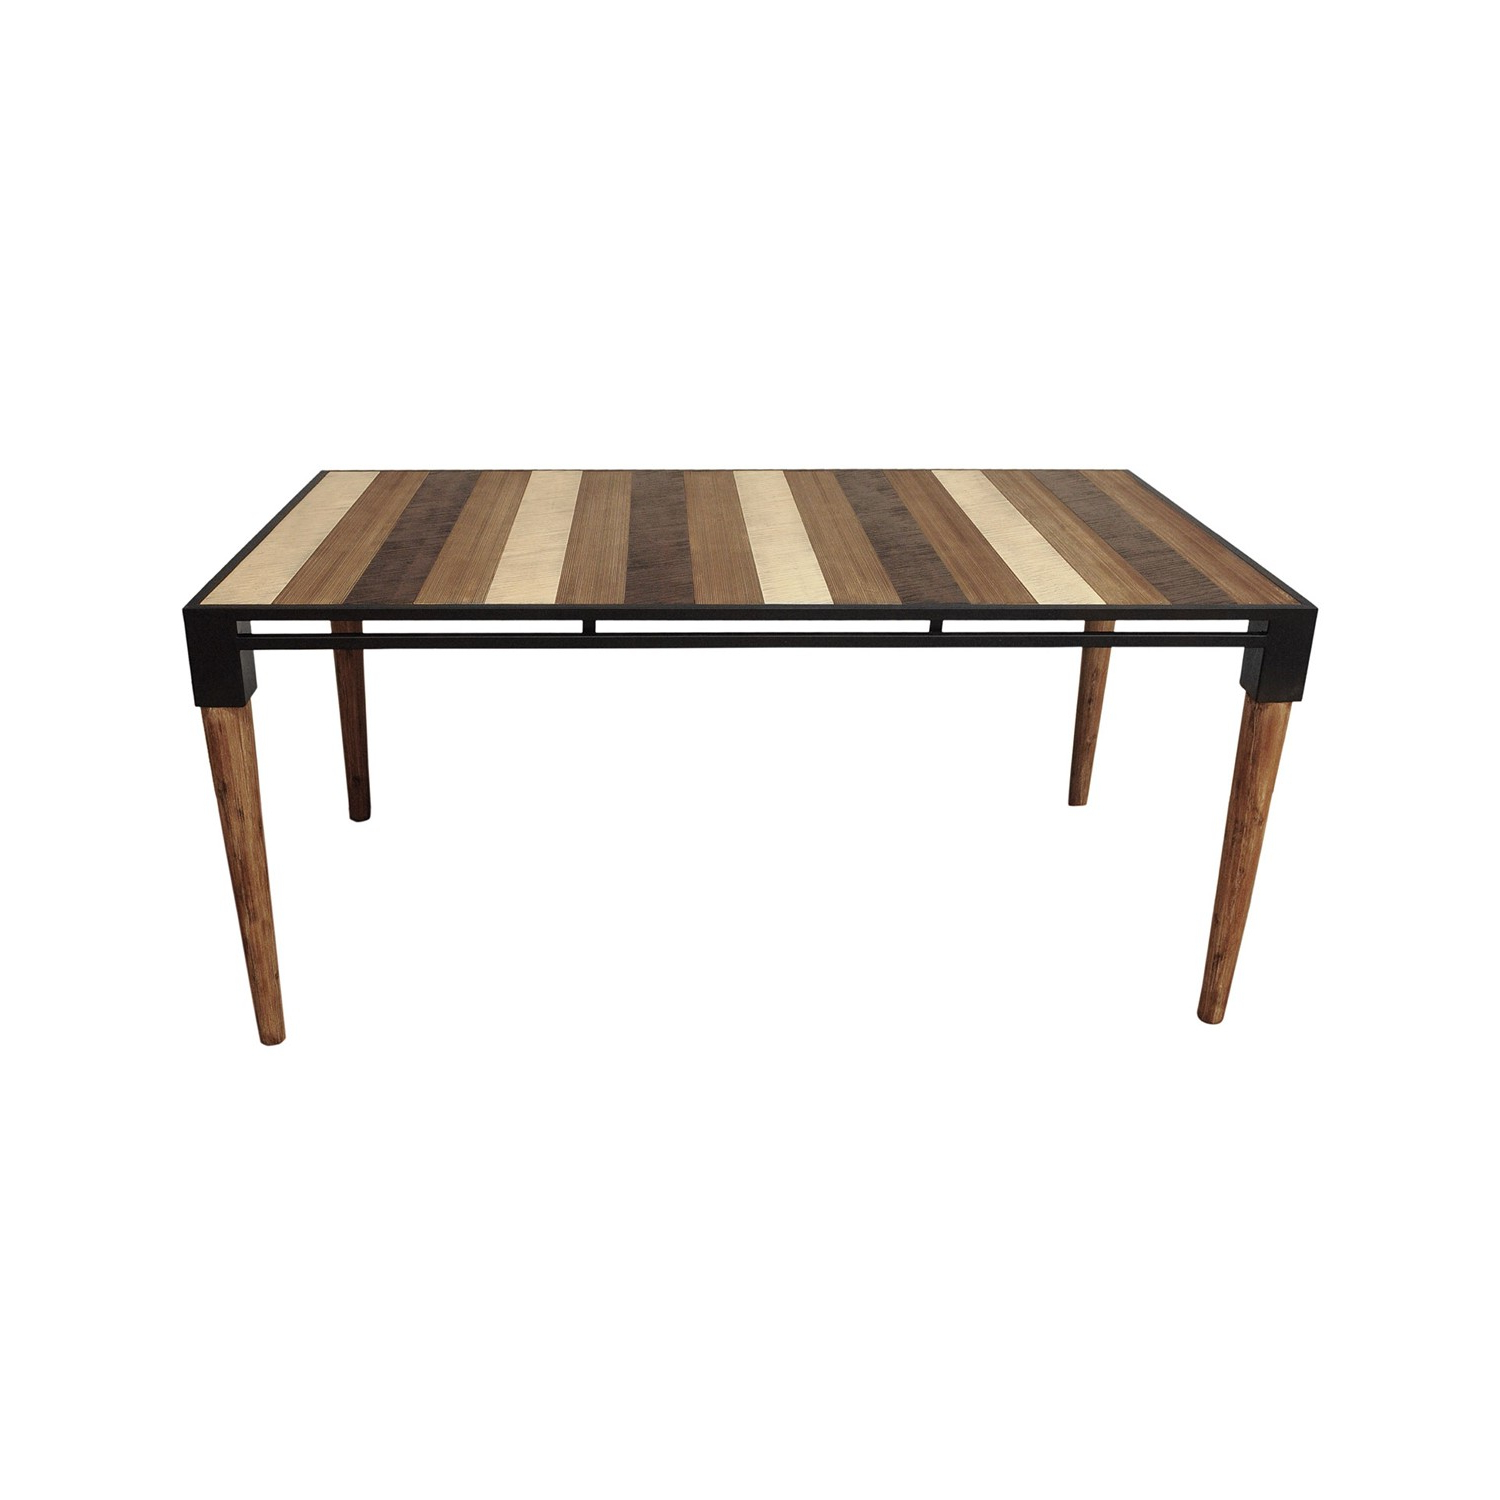 Preferred Acacia Wood Medley Medium Dining Tables With Metal Base For Medley Dining Table  Small (View 4 of 26)